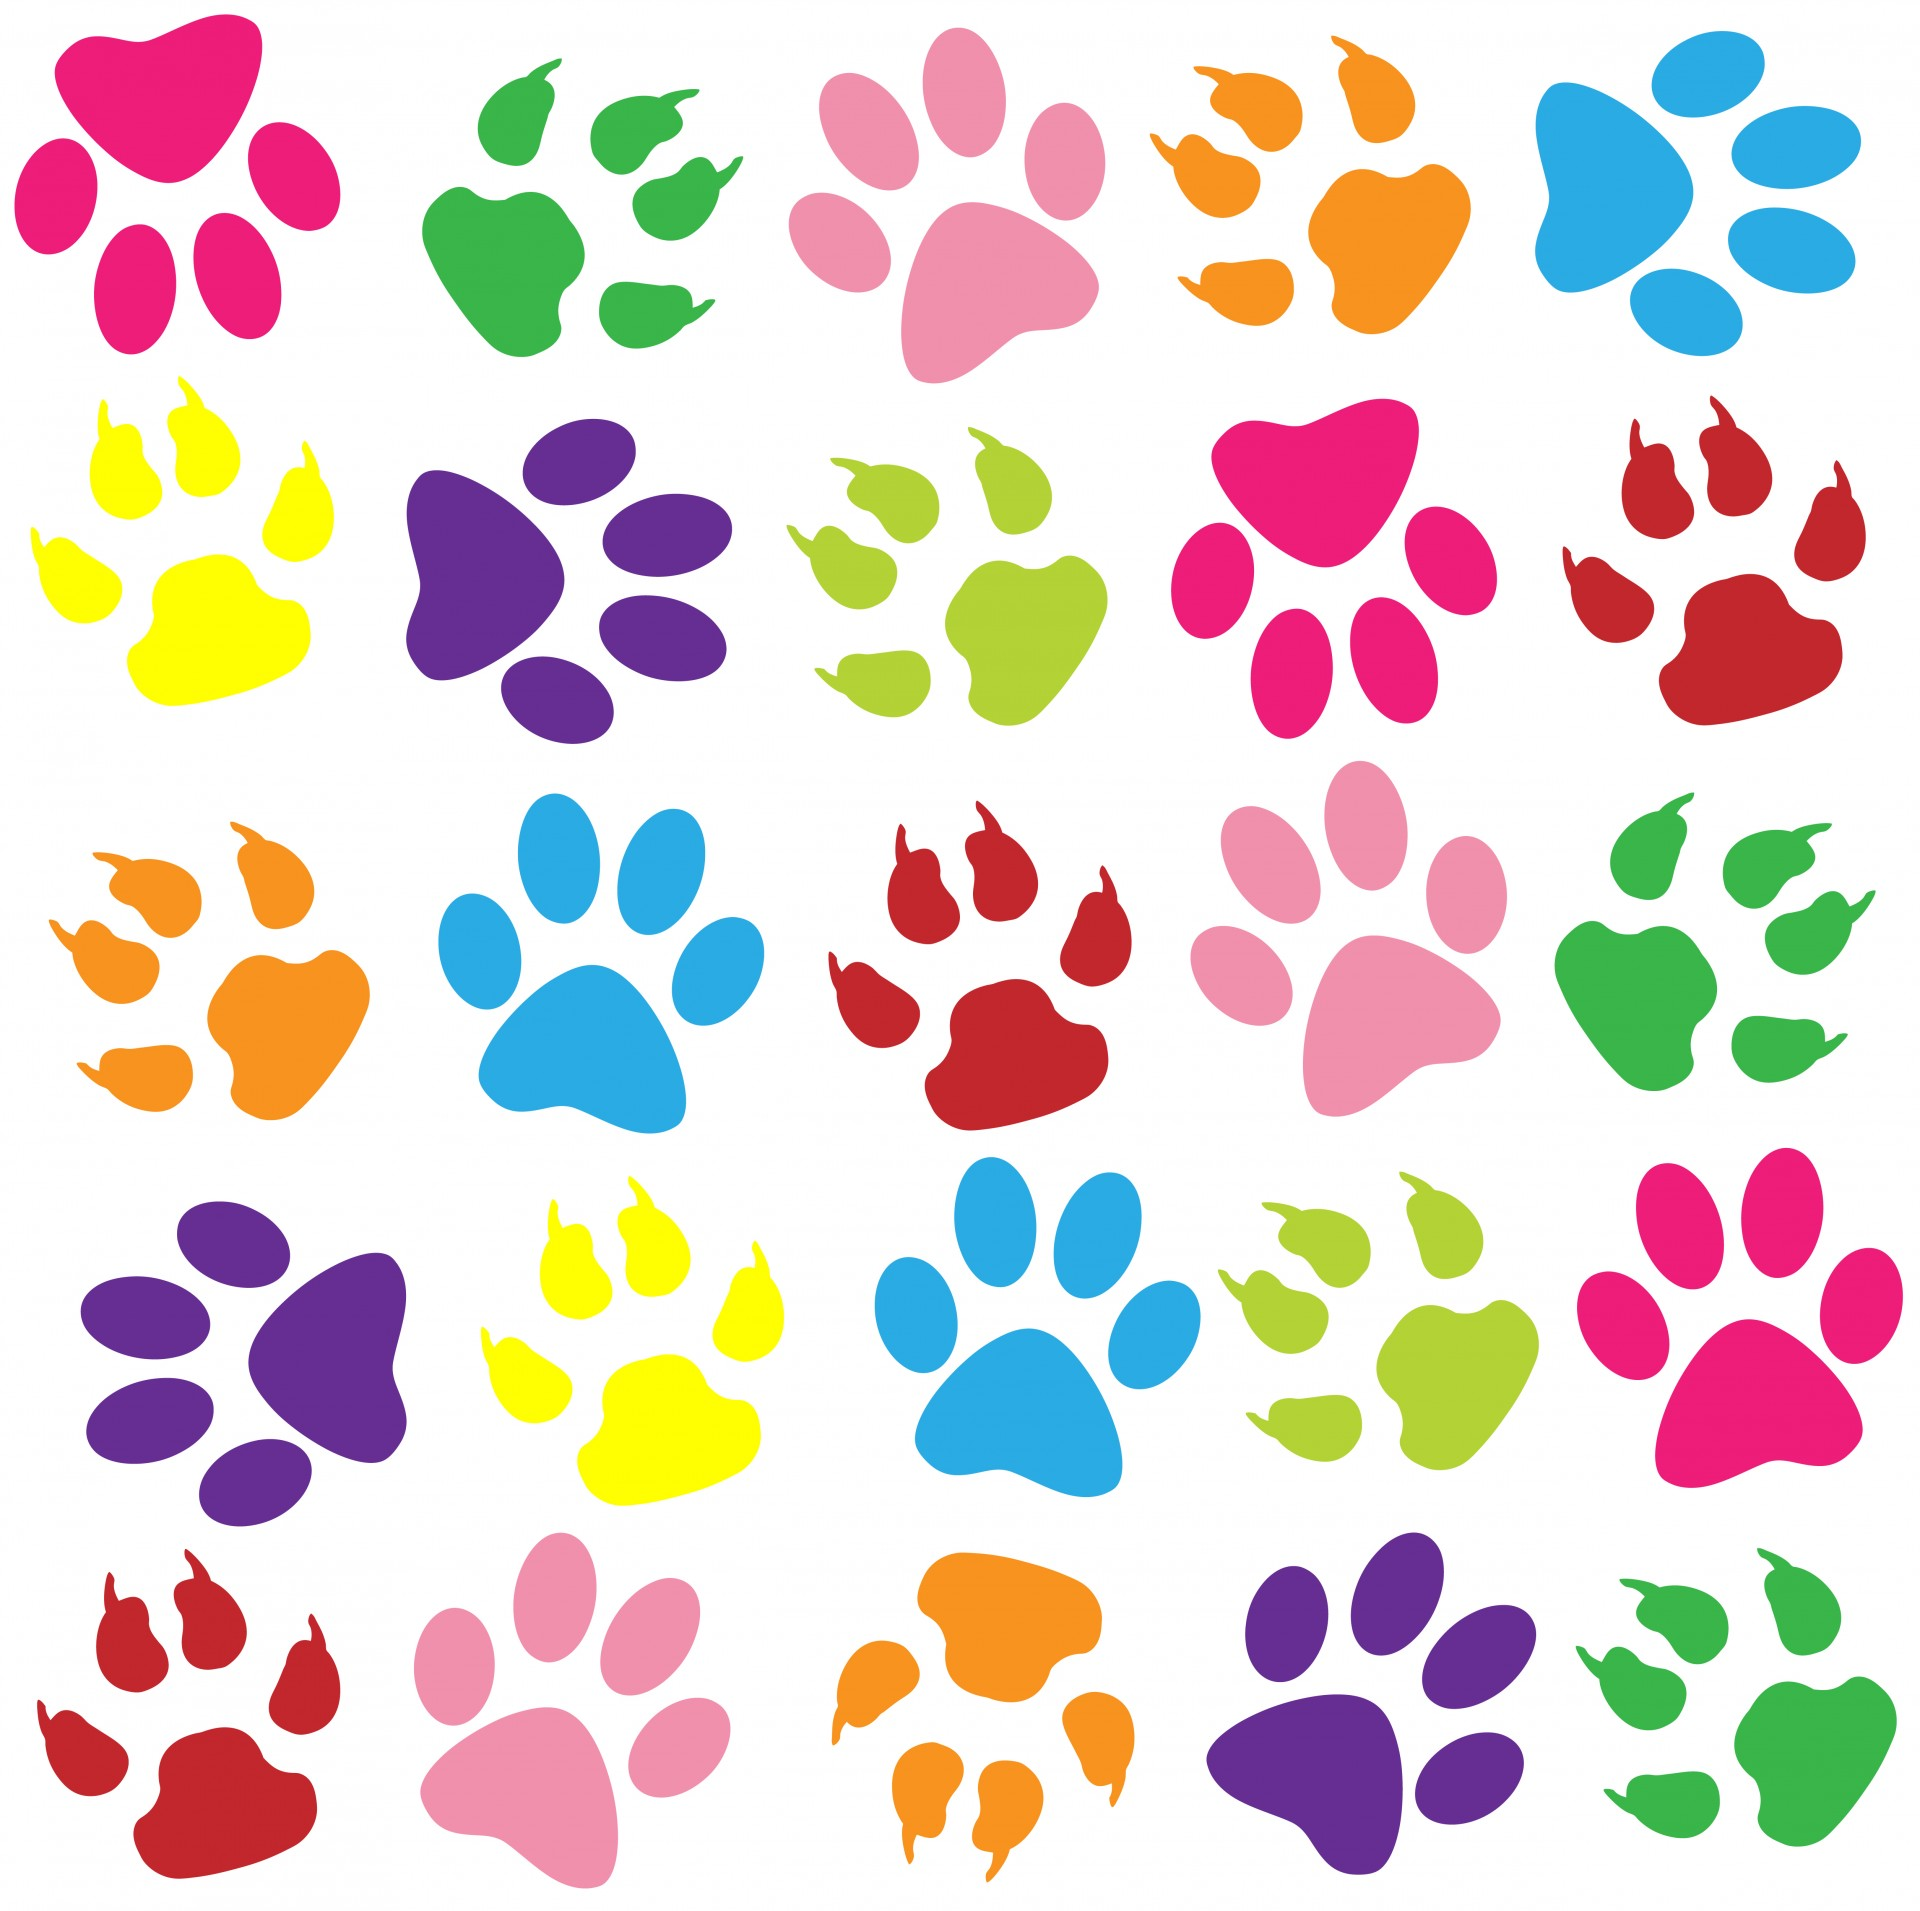 Paw Prints Colorful Background Free Stock Photo.